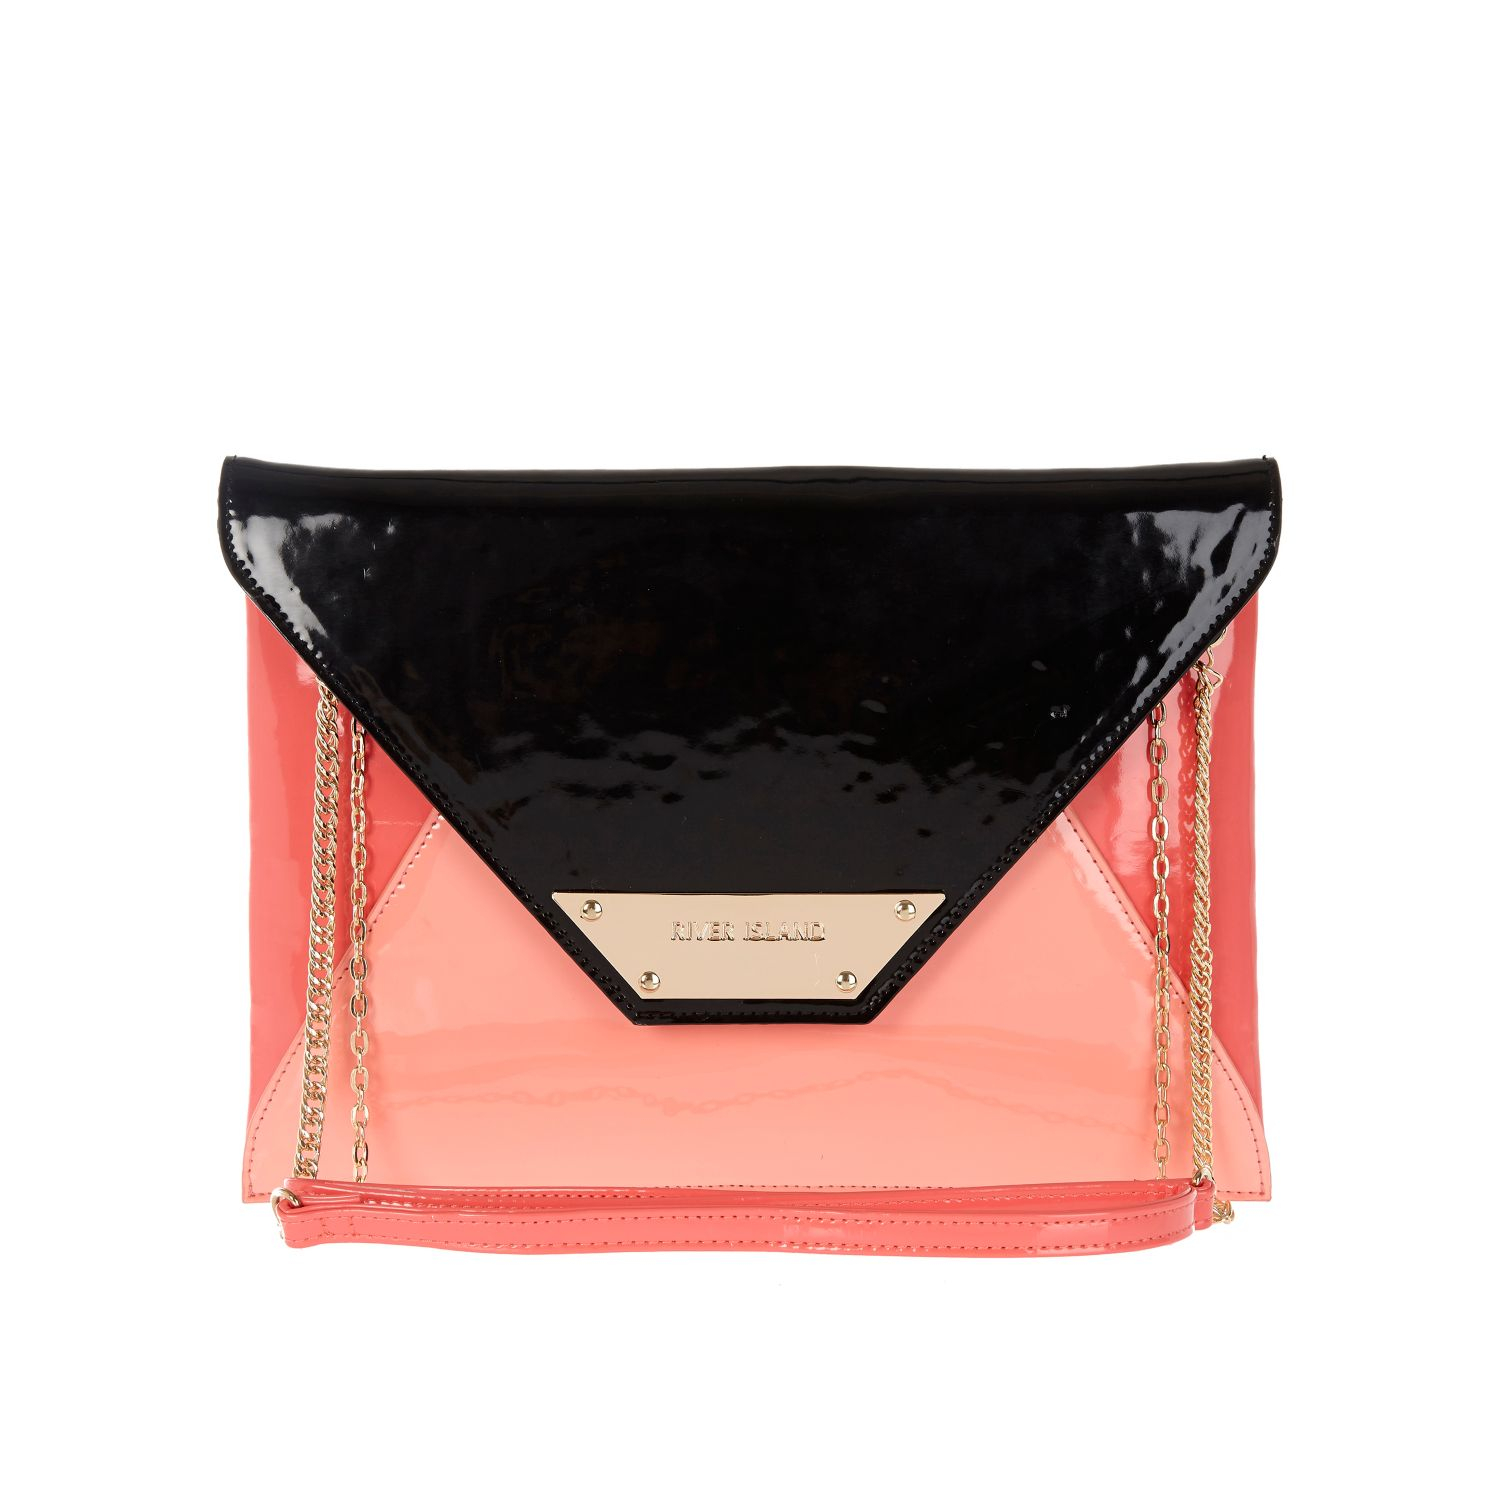 A great variety of clutches, evening bags & designer clutches. Shop for red, black & silver clutch. Macy's Presents: The Edit- A curated mix of fashion and inspiration Check It Out. Black Clutches & Evening Bags. Narrow by Brand. Adrianna Papell. Betsey Johnson. INC International Concepts.